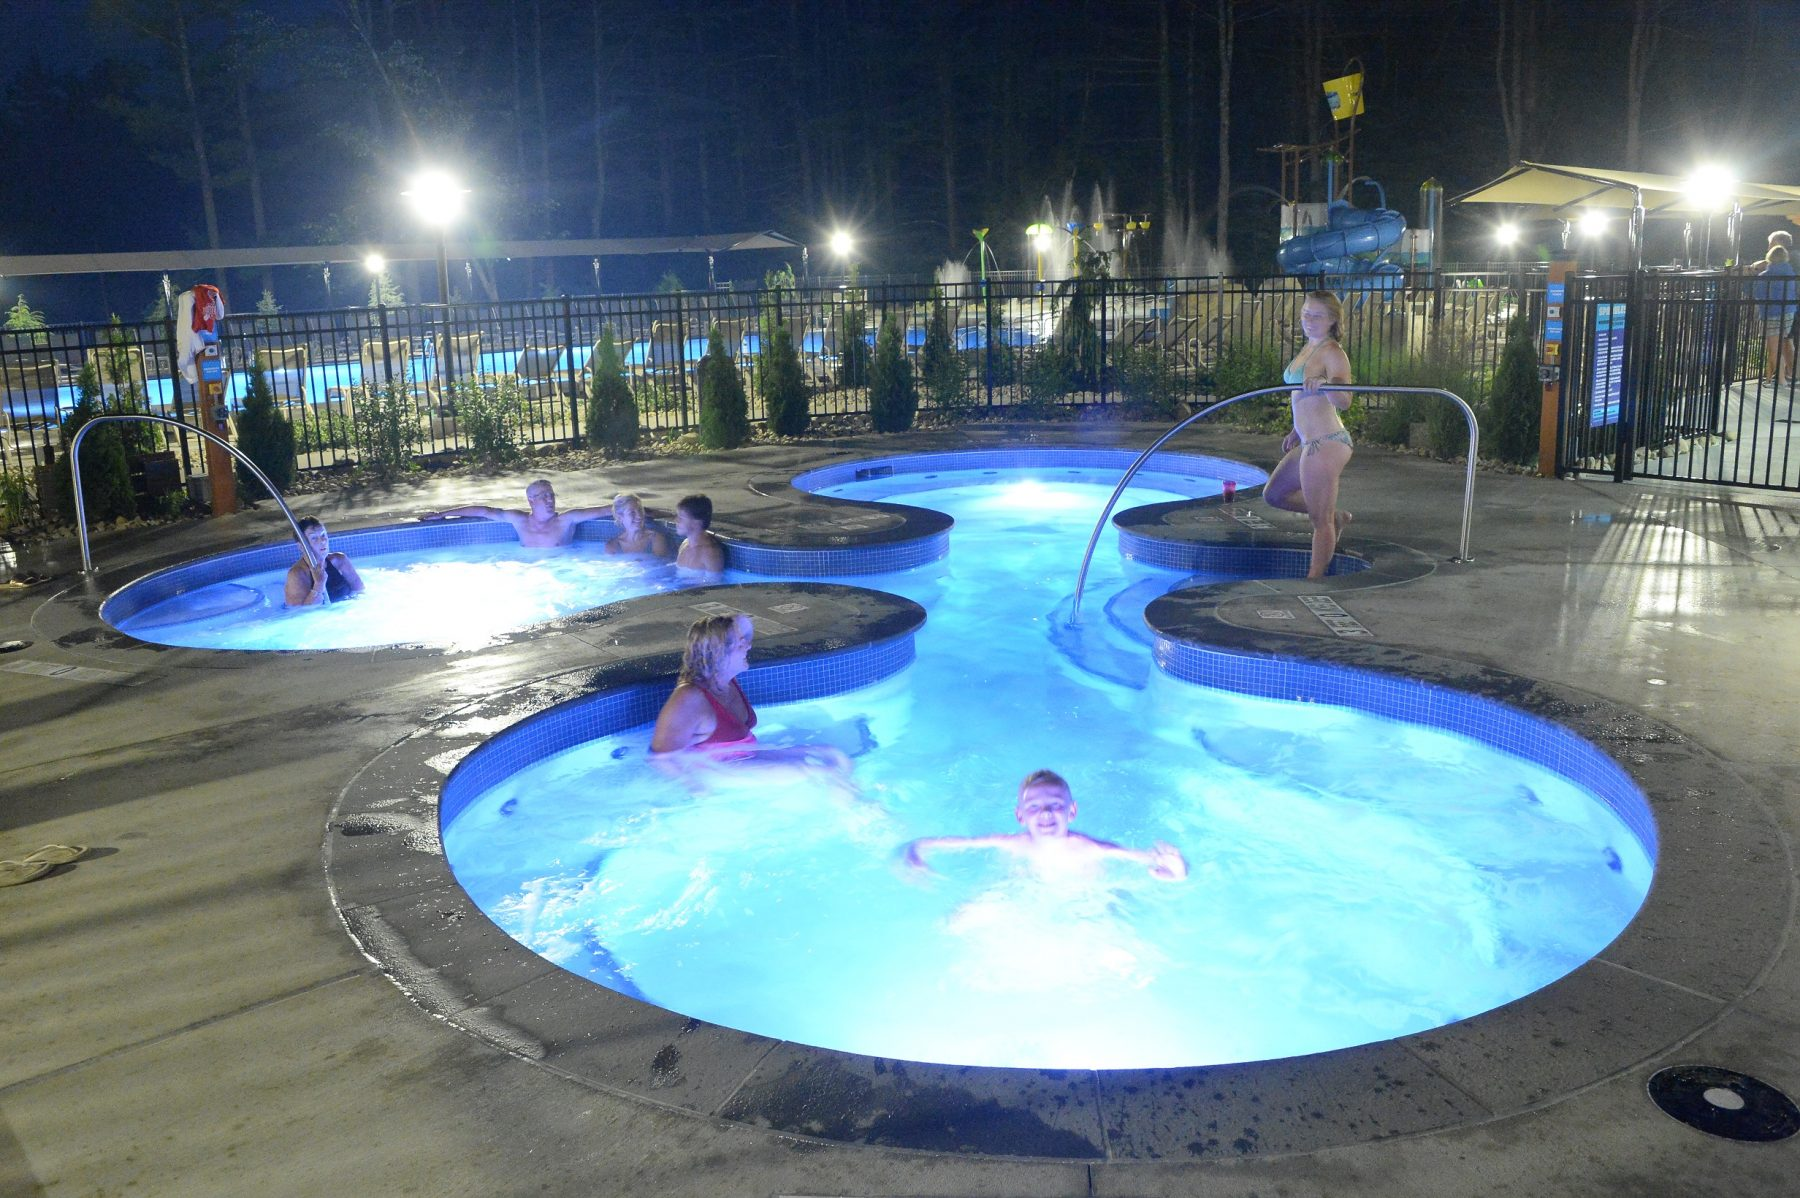 In the foreground the hot tub area is shown at night with guests lounging in it.   In the background the dump bucket and slide of the splash pad area is shown.